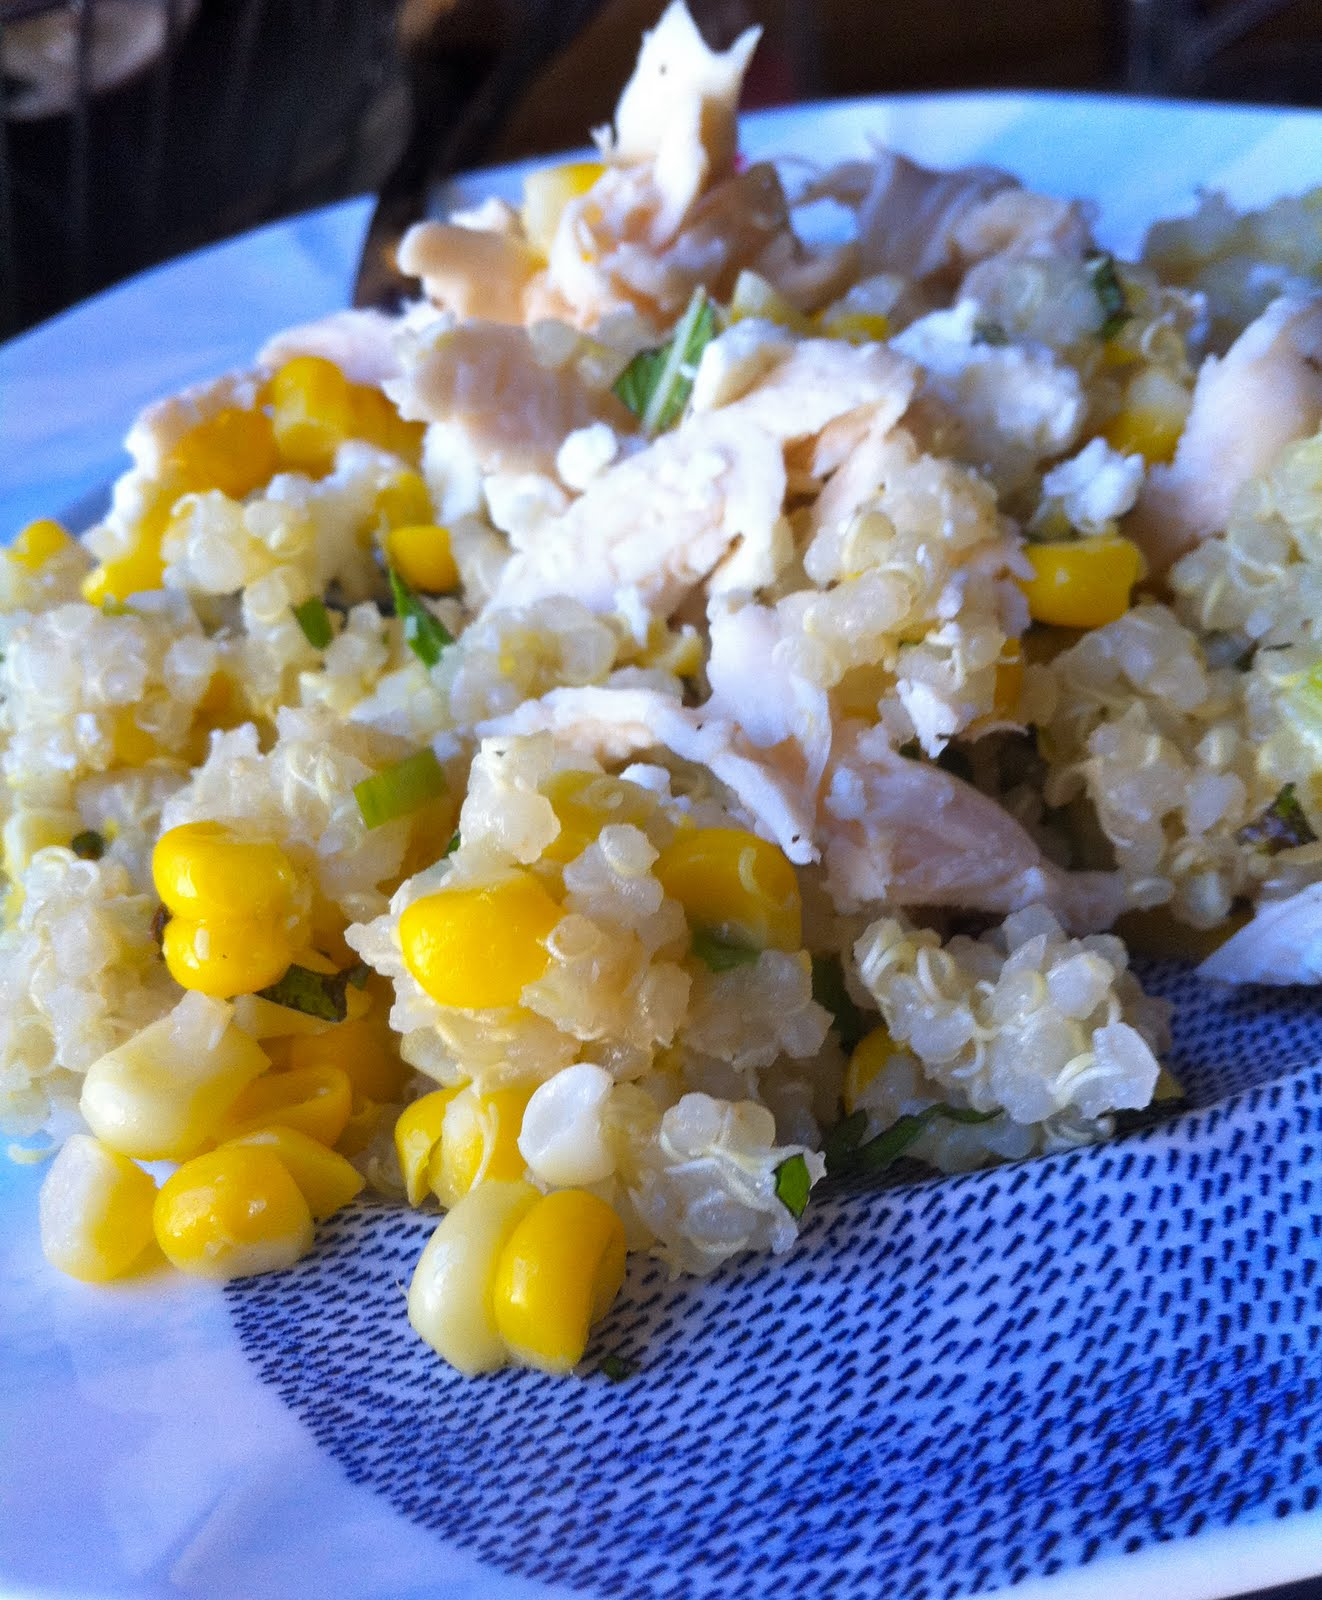 ... meatless monday - lemon scented quinoa with corn, mint, and scallions